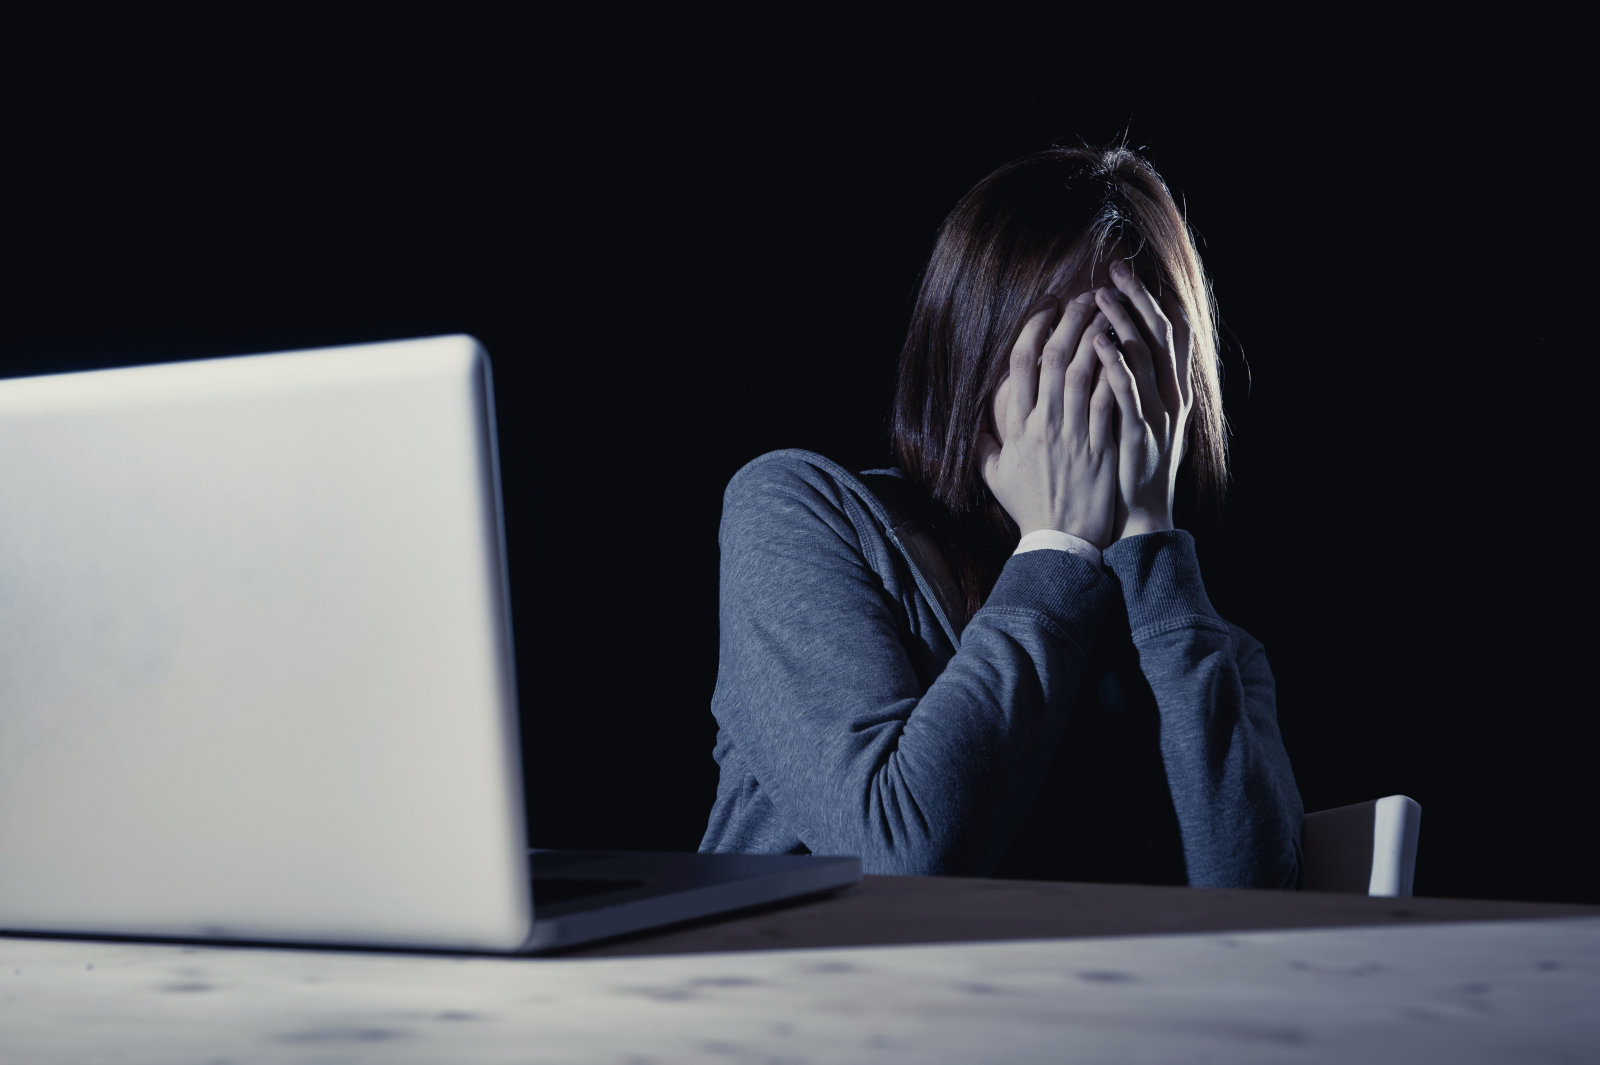 Girls are more likely to experience cyberbullying.